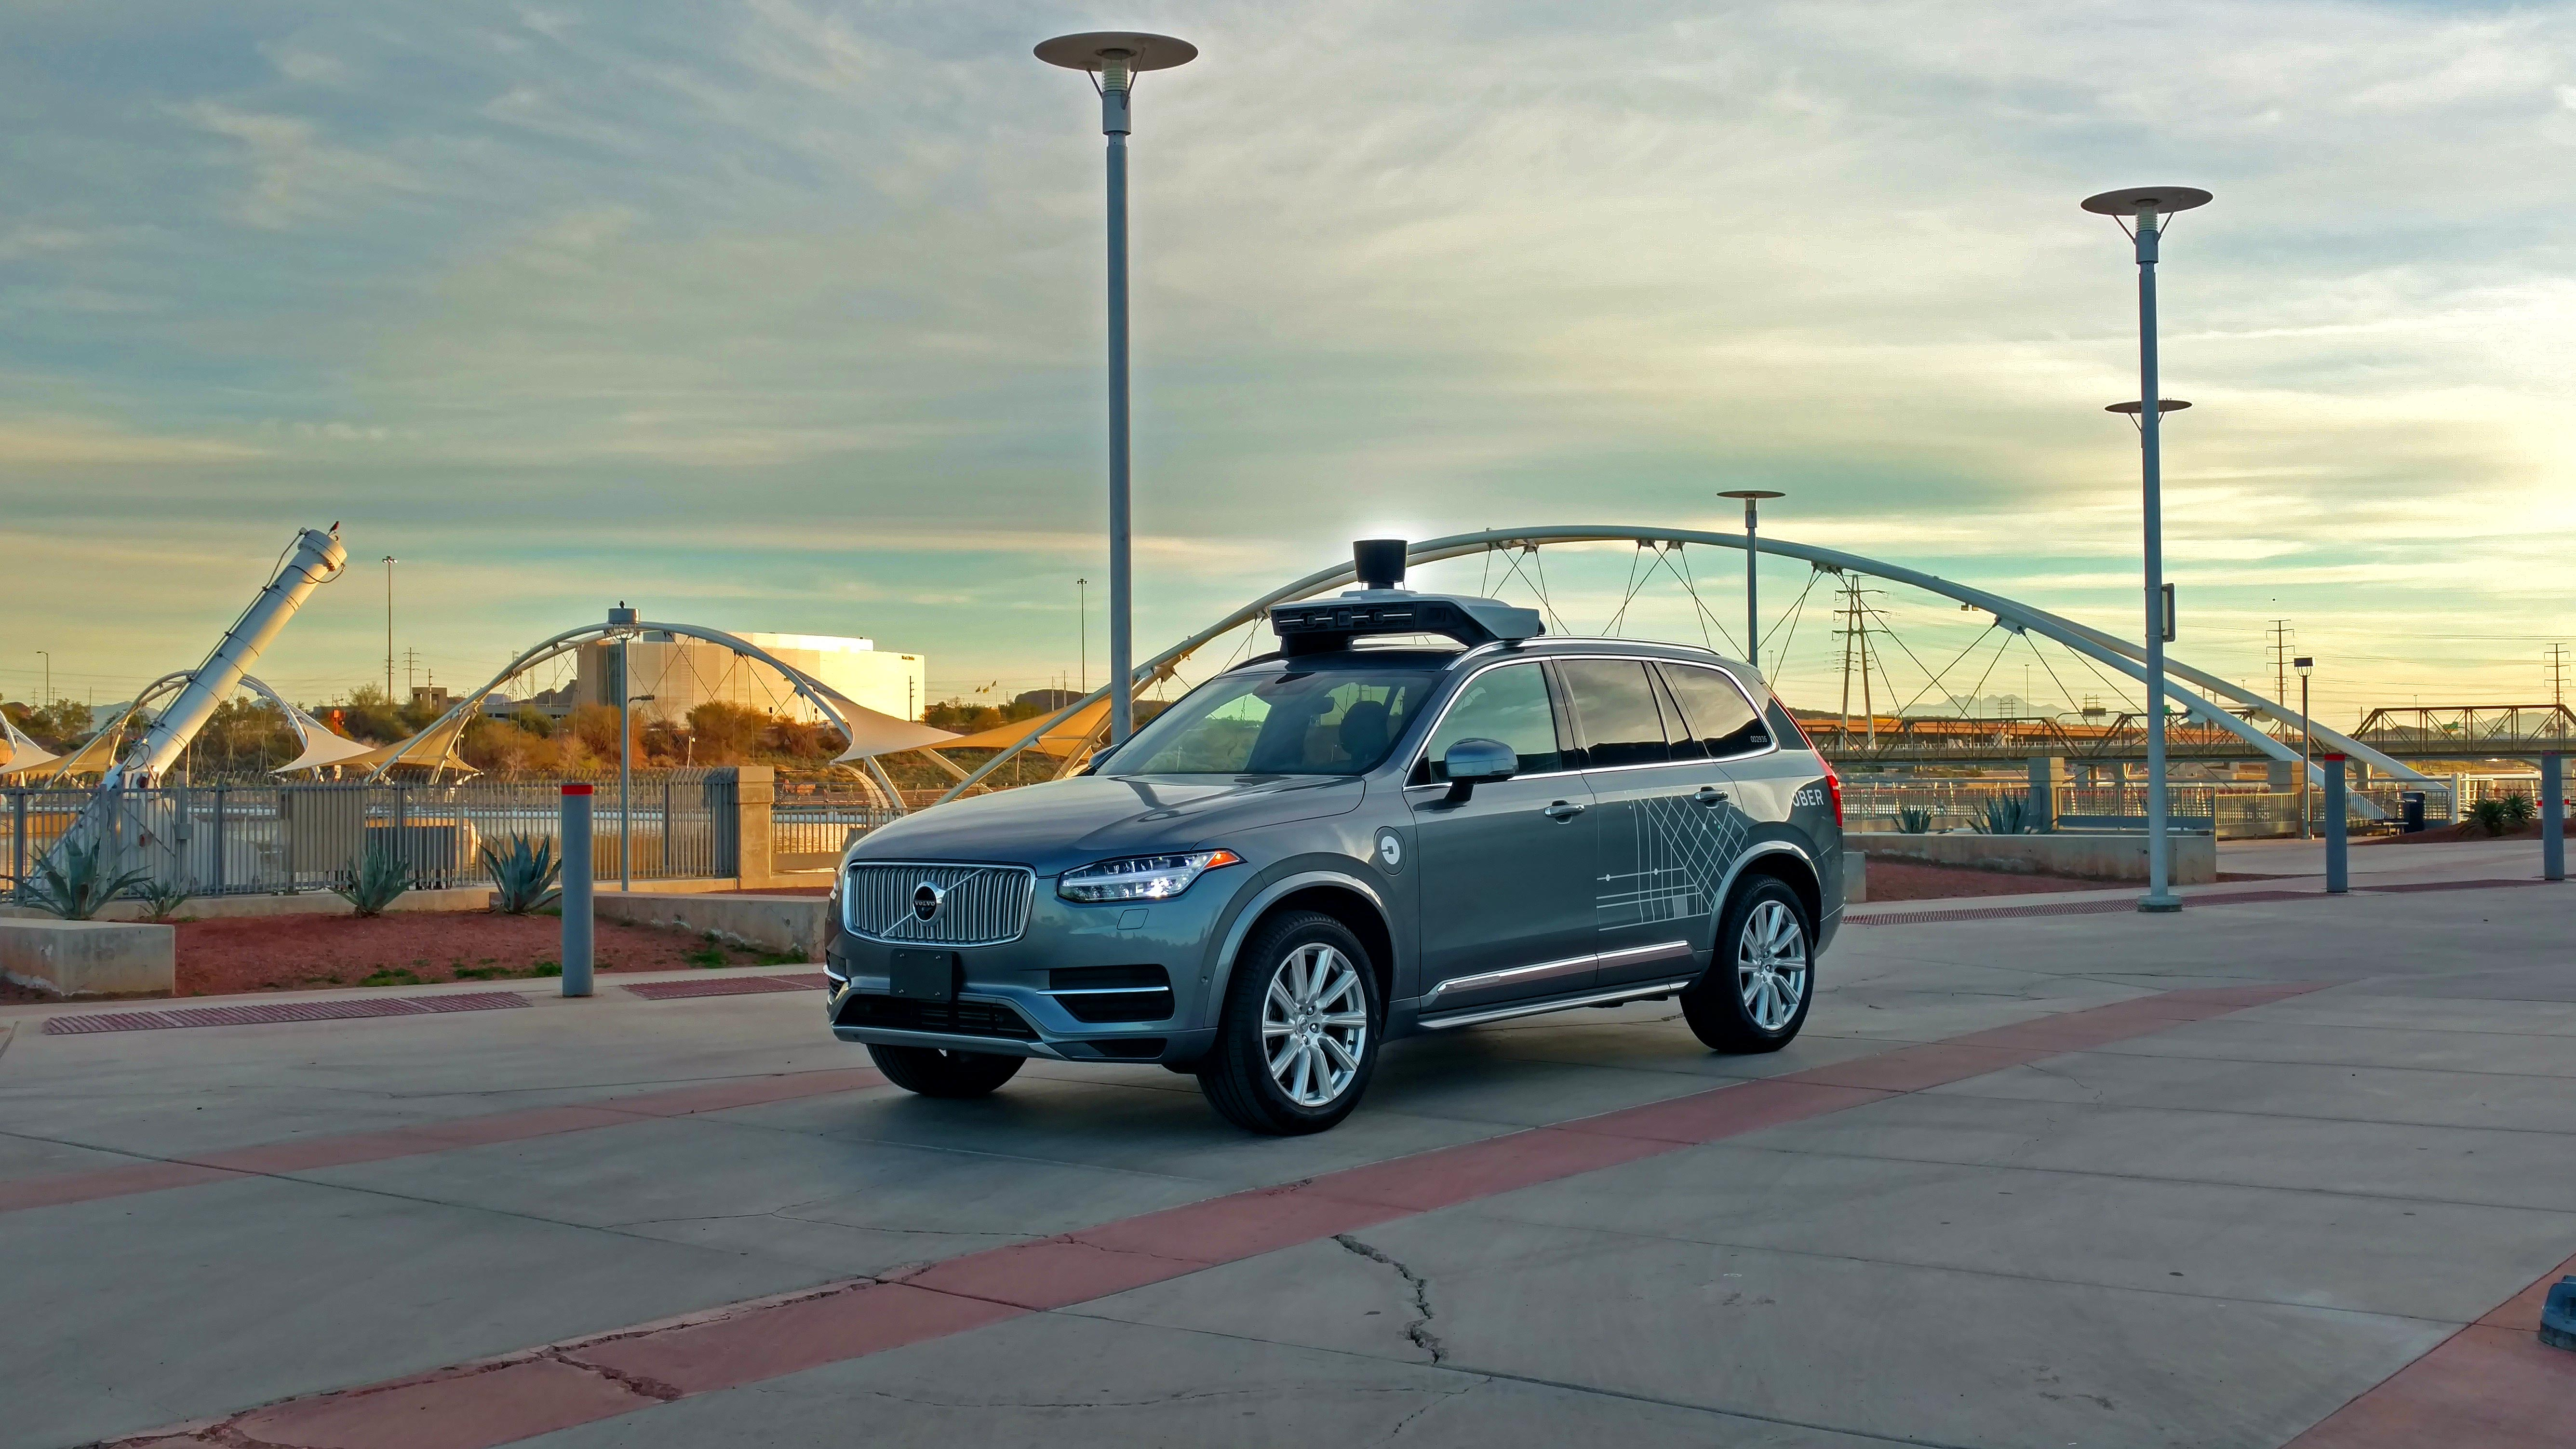 Uber S Self Driving Cars Are Now Picking Up Passengers In Arizona